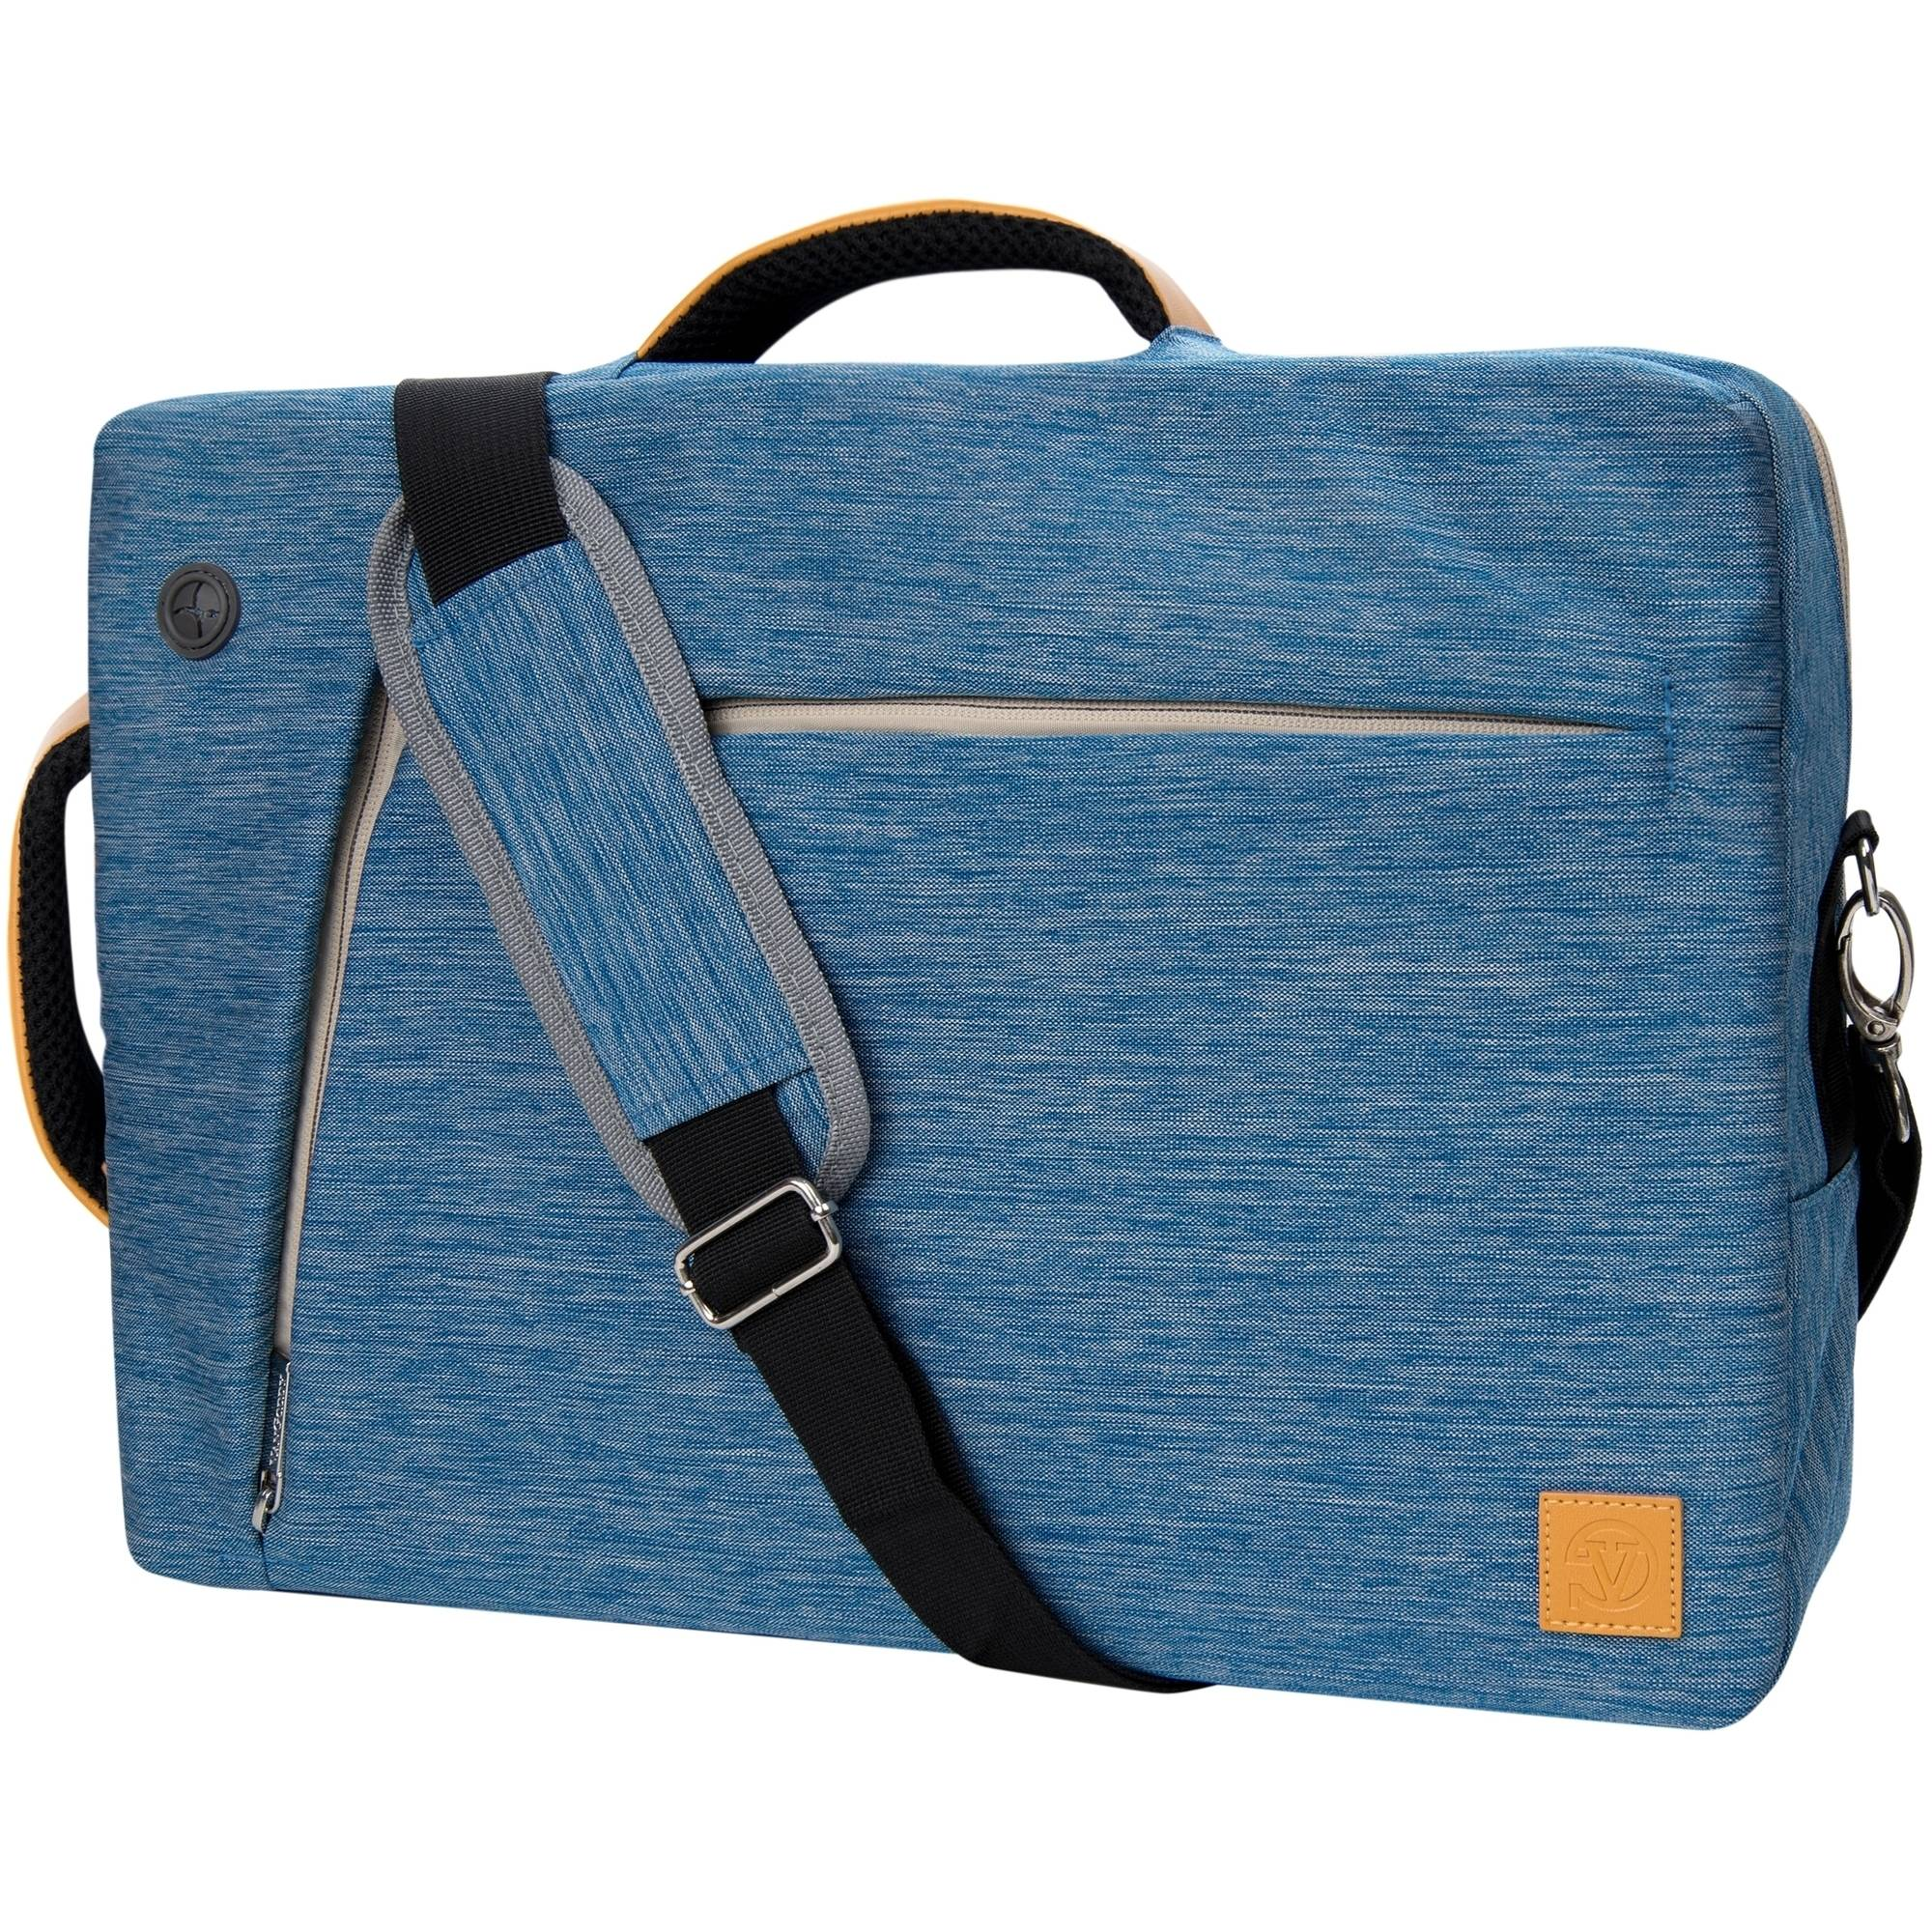 VANGODDY Slate Carrying Laptop / Notebook Bag for School, Office or Travel fits 12.1, 13, 13.3 inch devices [Samsung, HP, Asus, Acer, Apple, Toshiba, Lenovo, etc.]